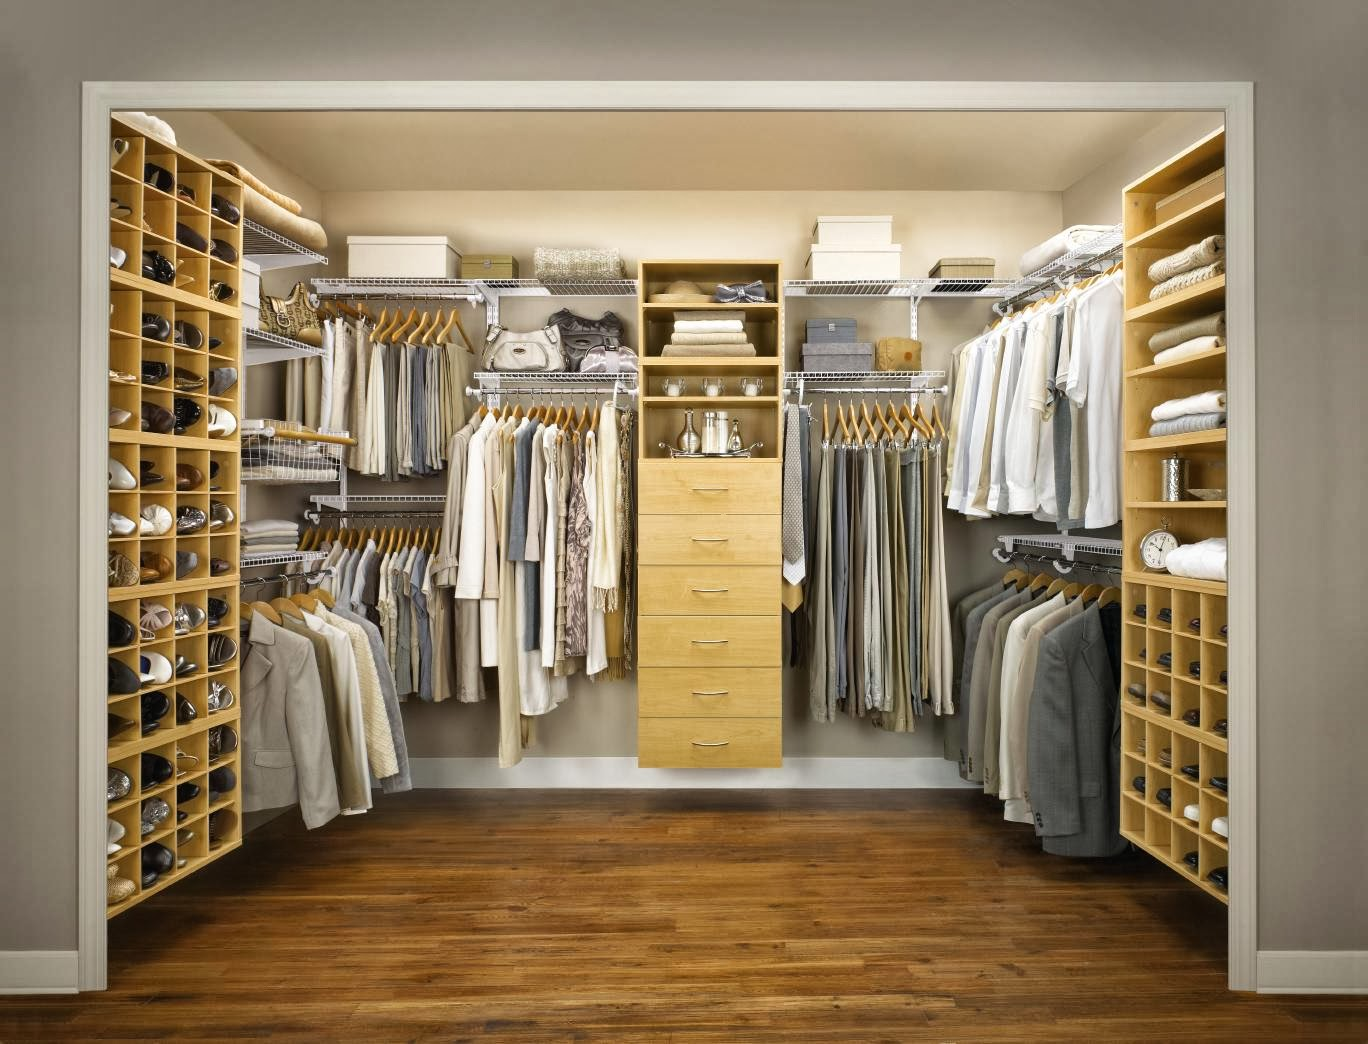 Bedroom closet storage ideas Photo - 1